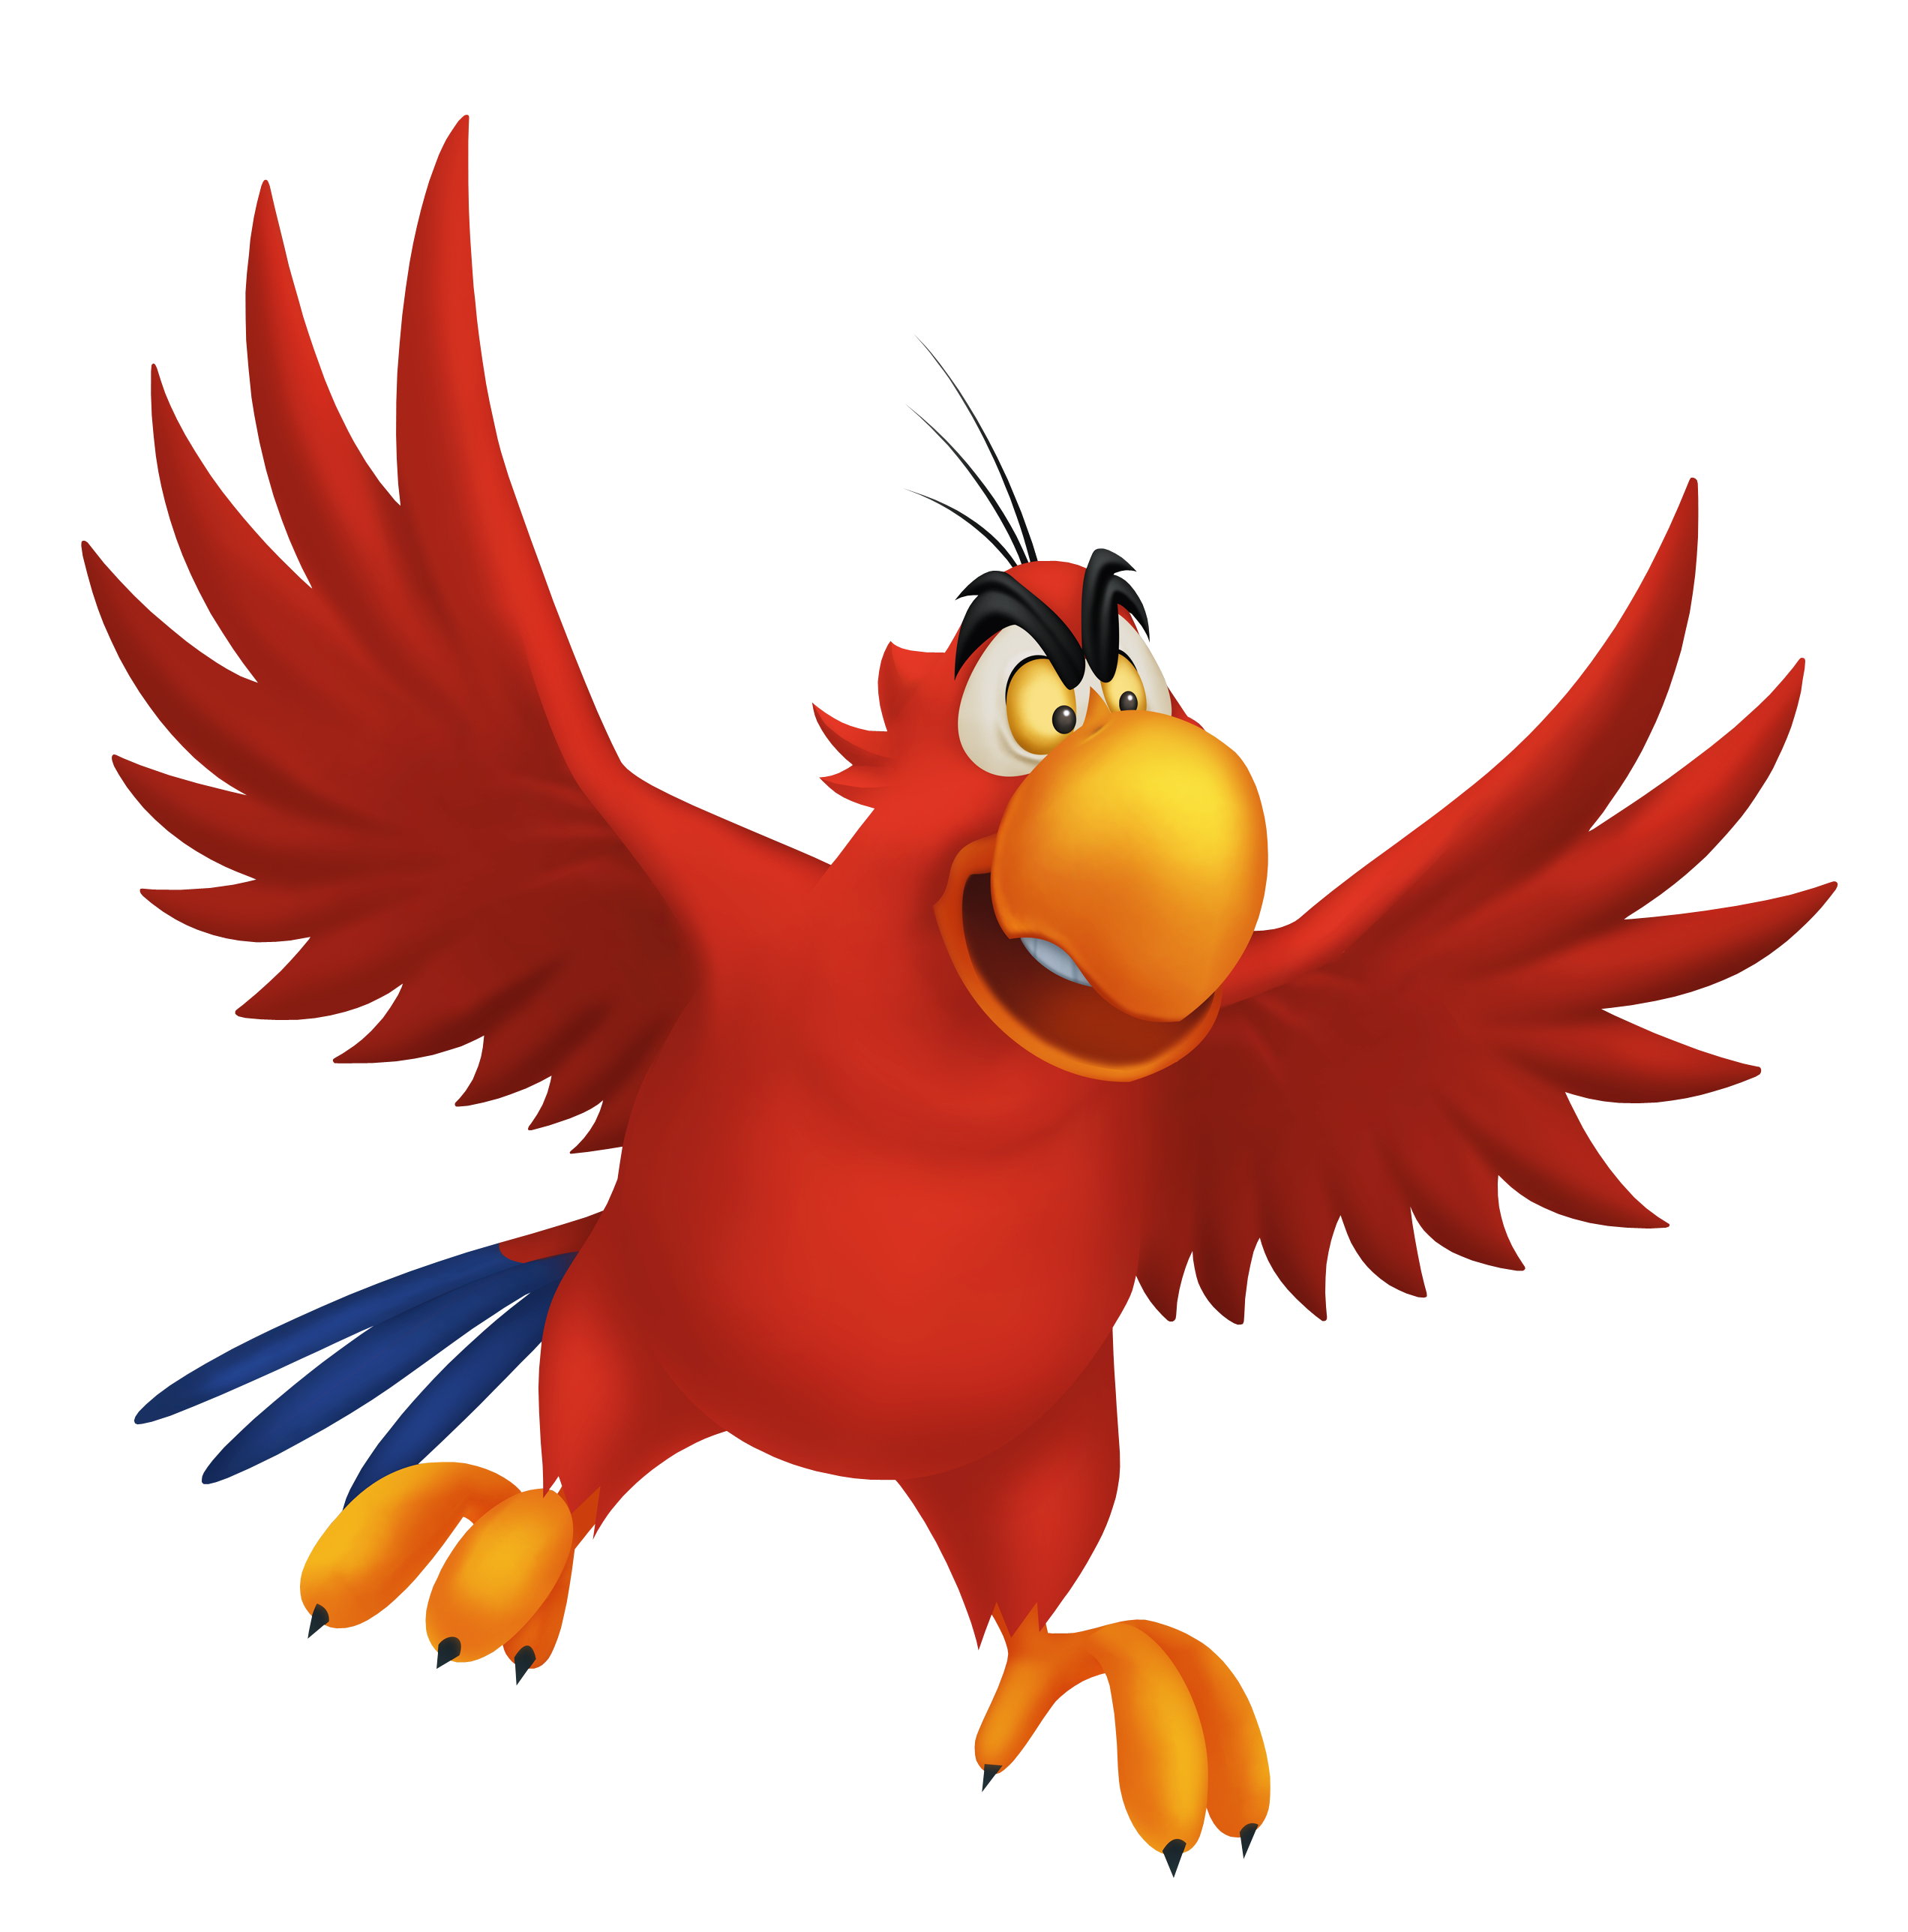 Iago PNG Images Transparent Free Download.